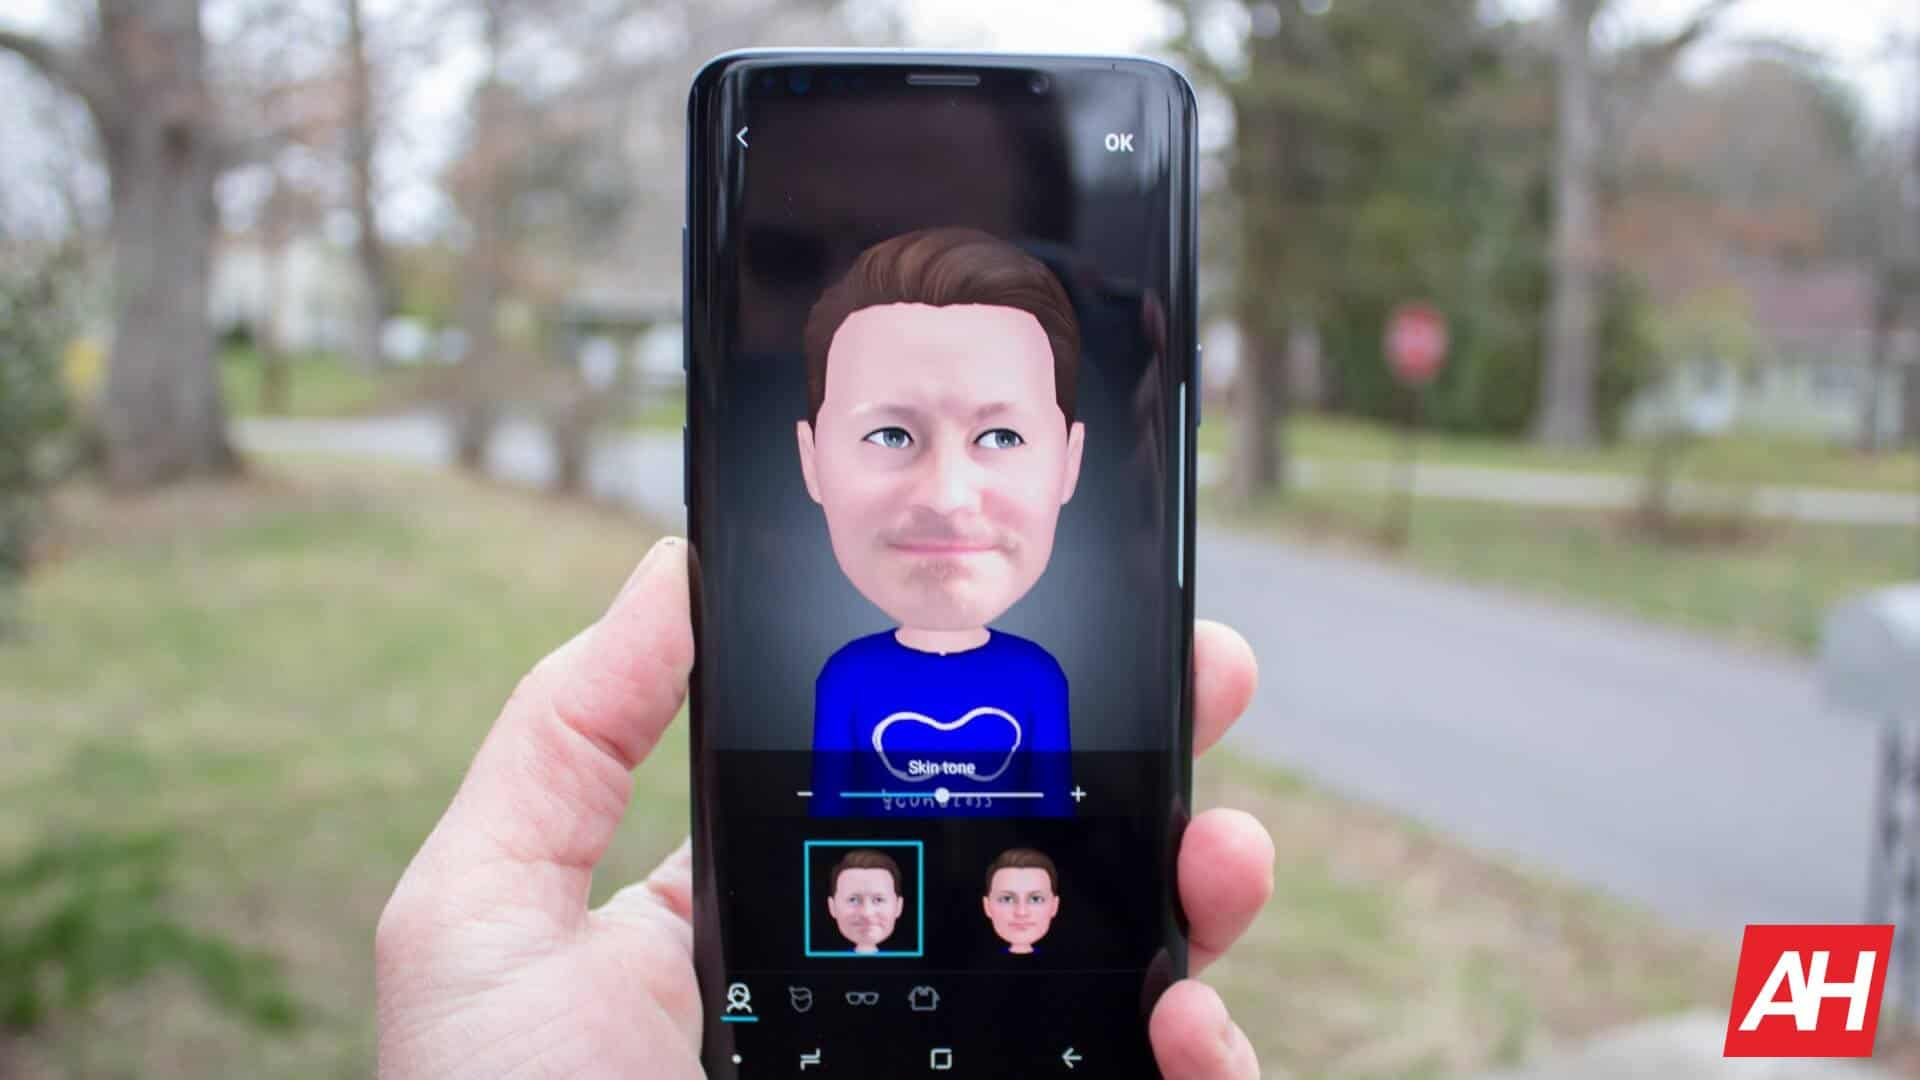 Galaxy Ar Emoji Get Custom Outfits From Coke, Scooby Doo & More photo